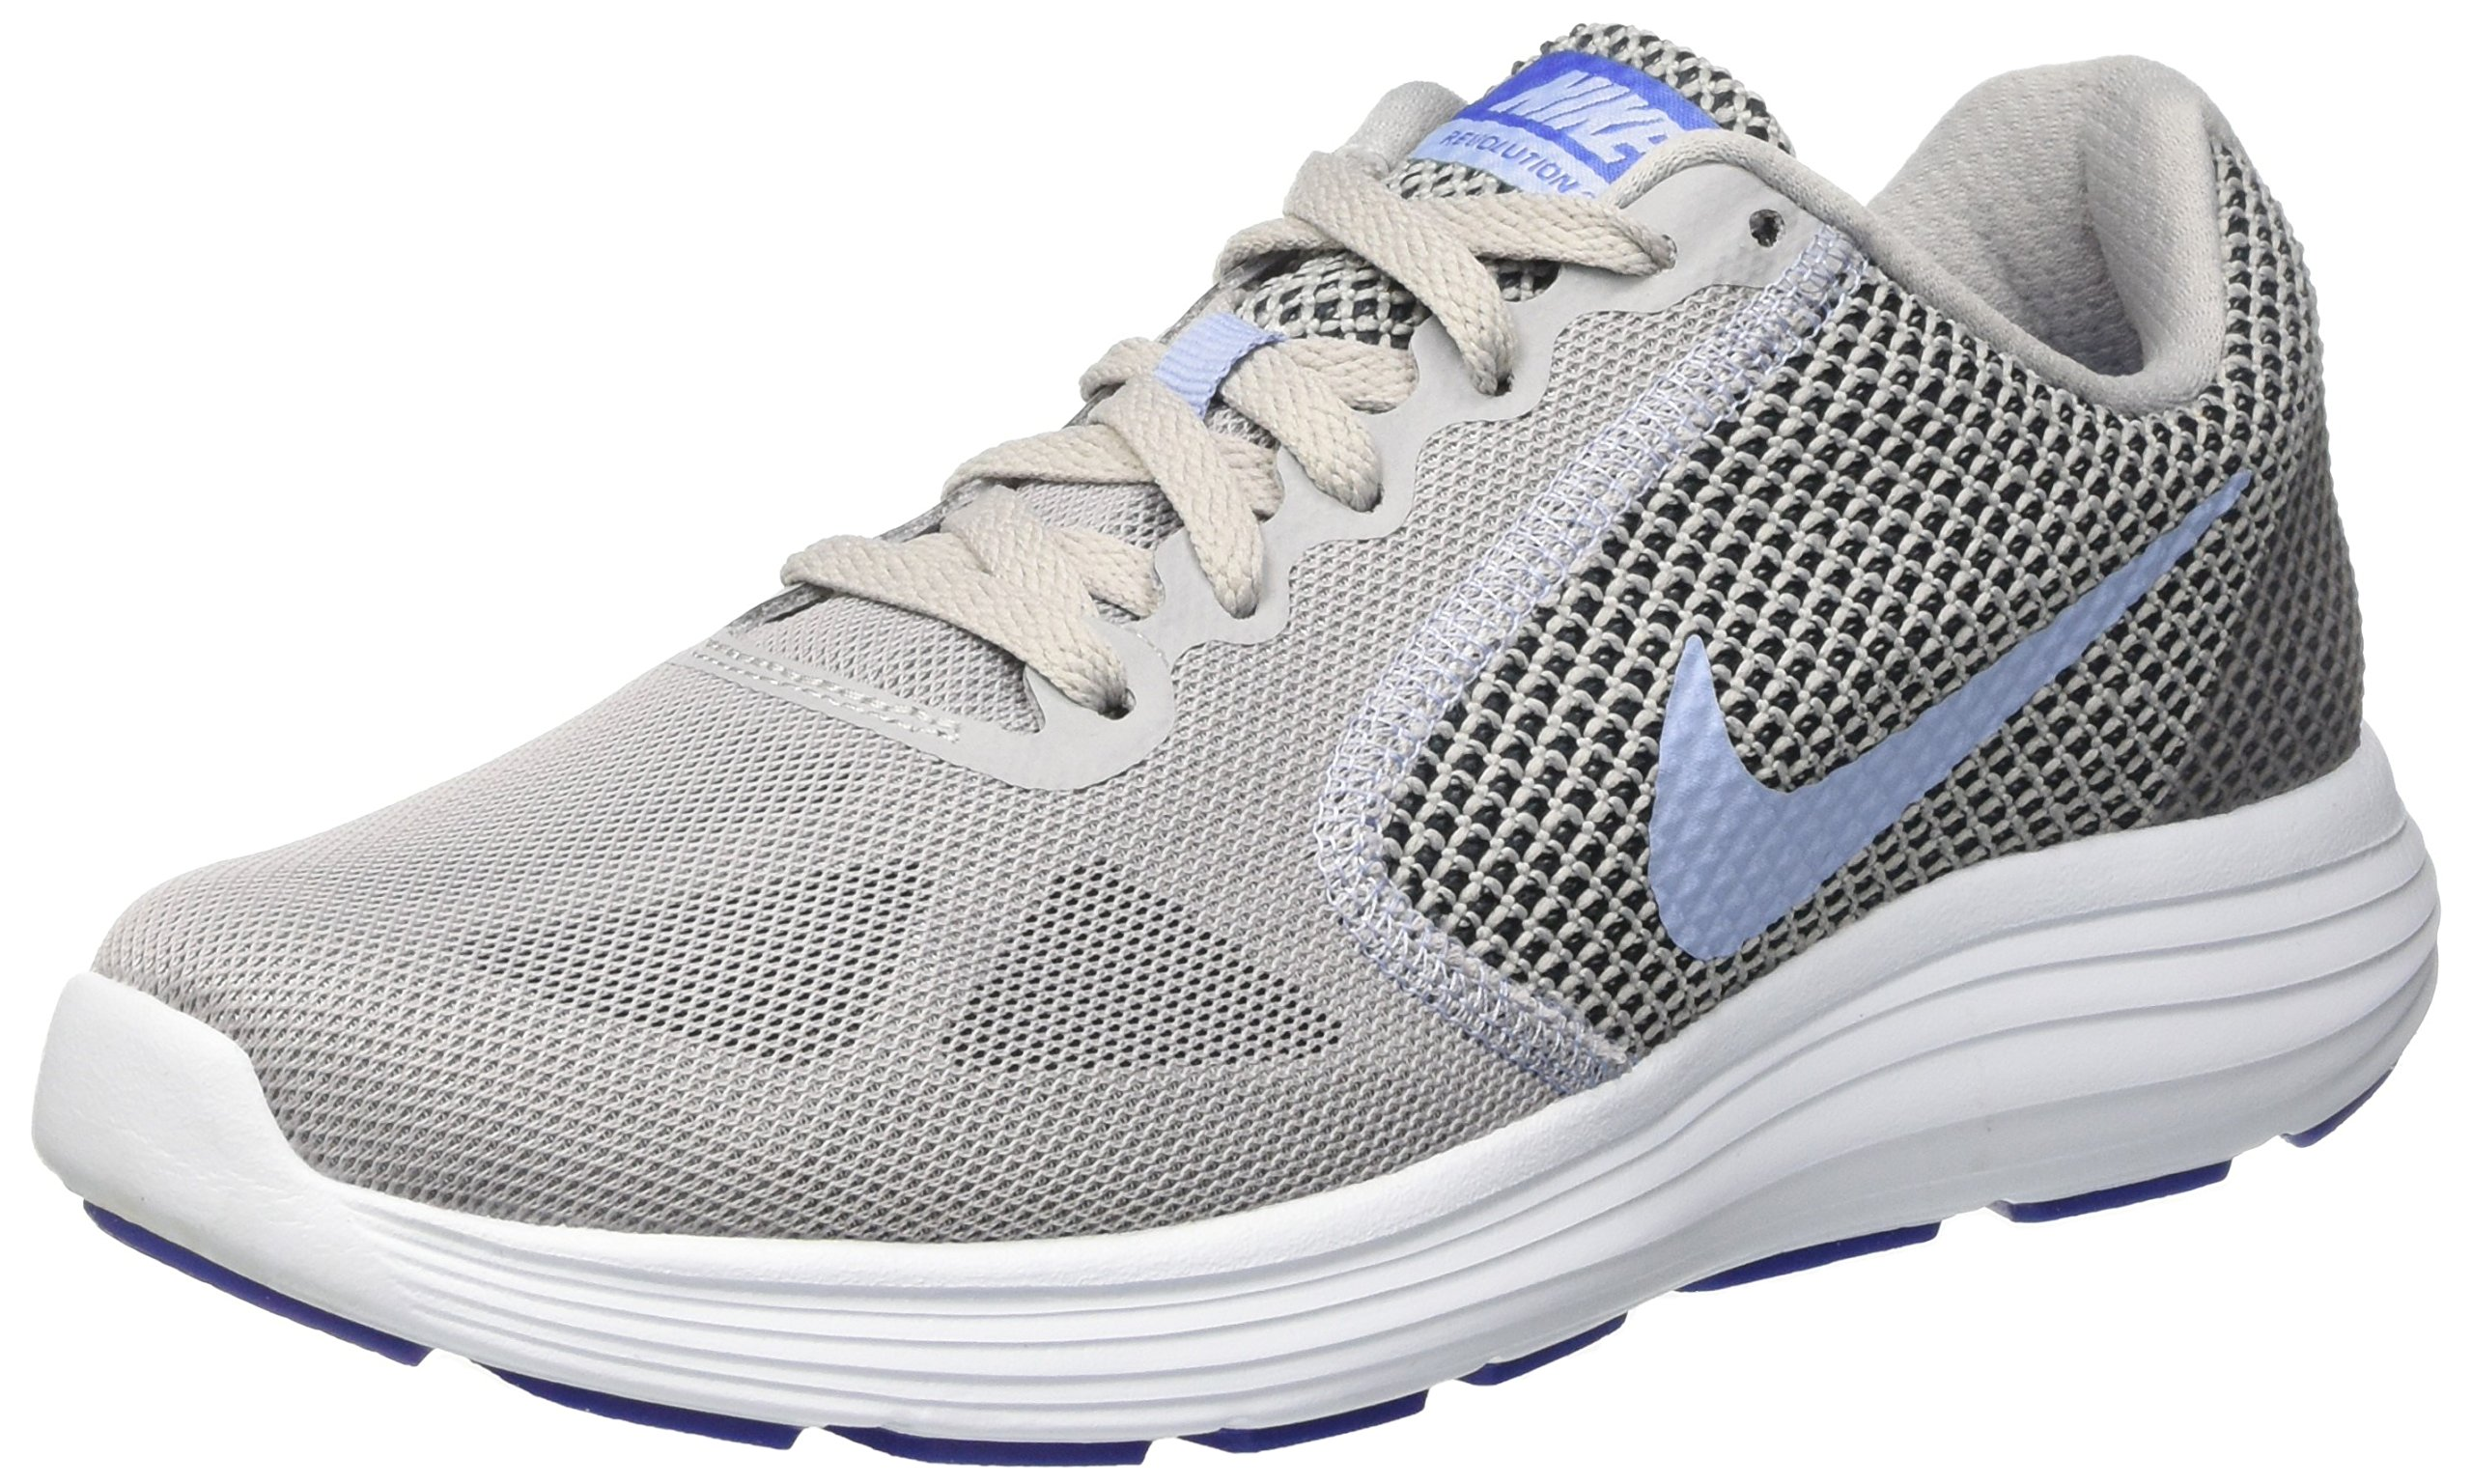 NIKE Women's Revolution 3 Running Shoe, Grey Aluminum Black Blue Tint, 6.5 B(M) US